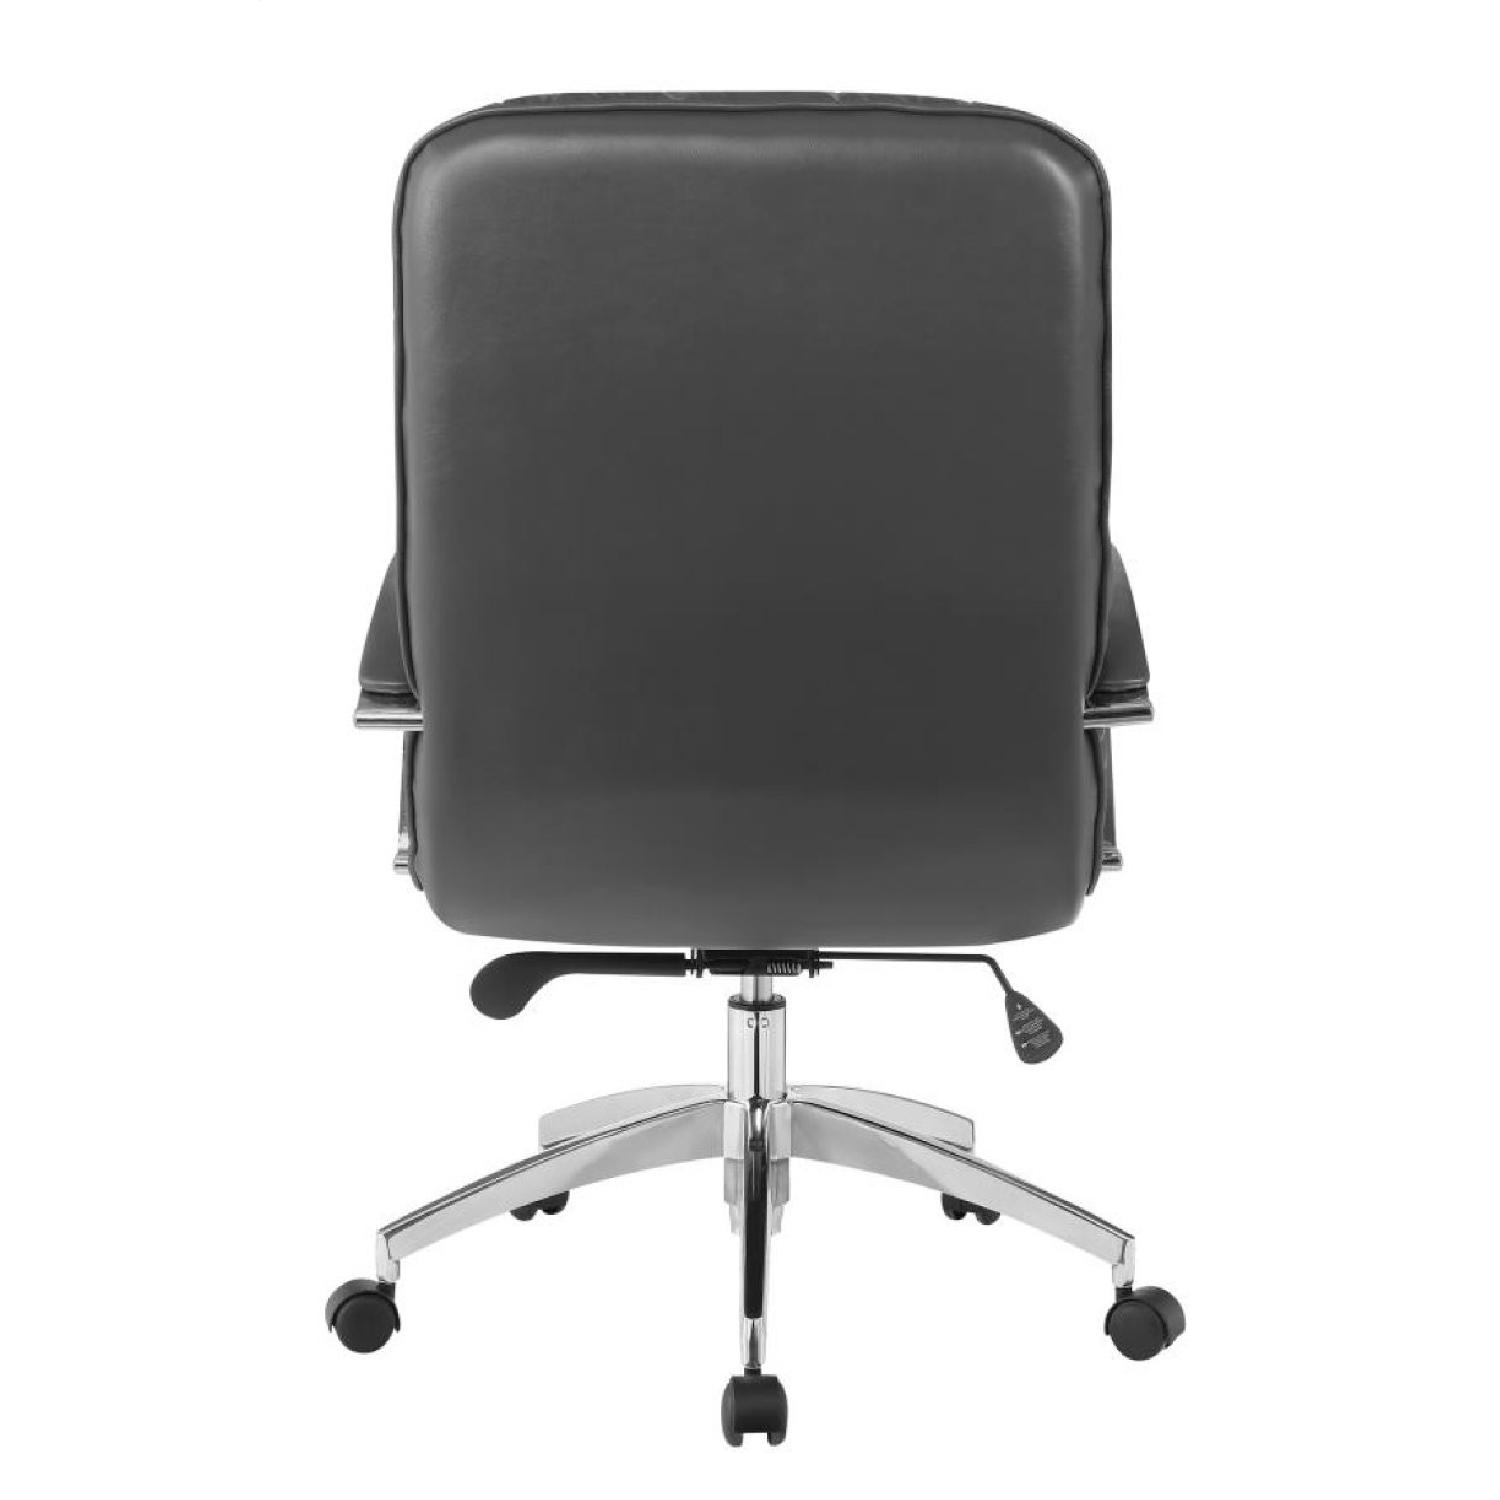 Modern Office Chair in Grey Leatherette w/ Chrome Base - image-1